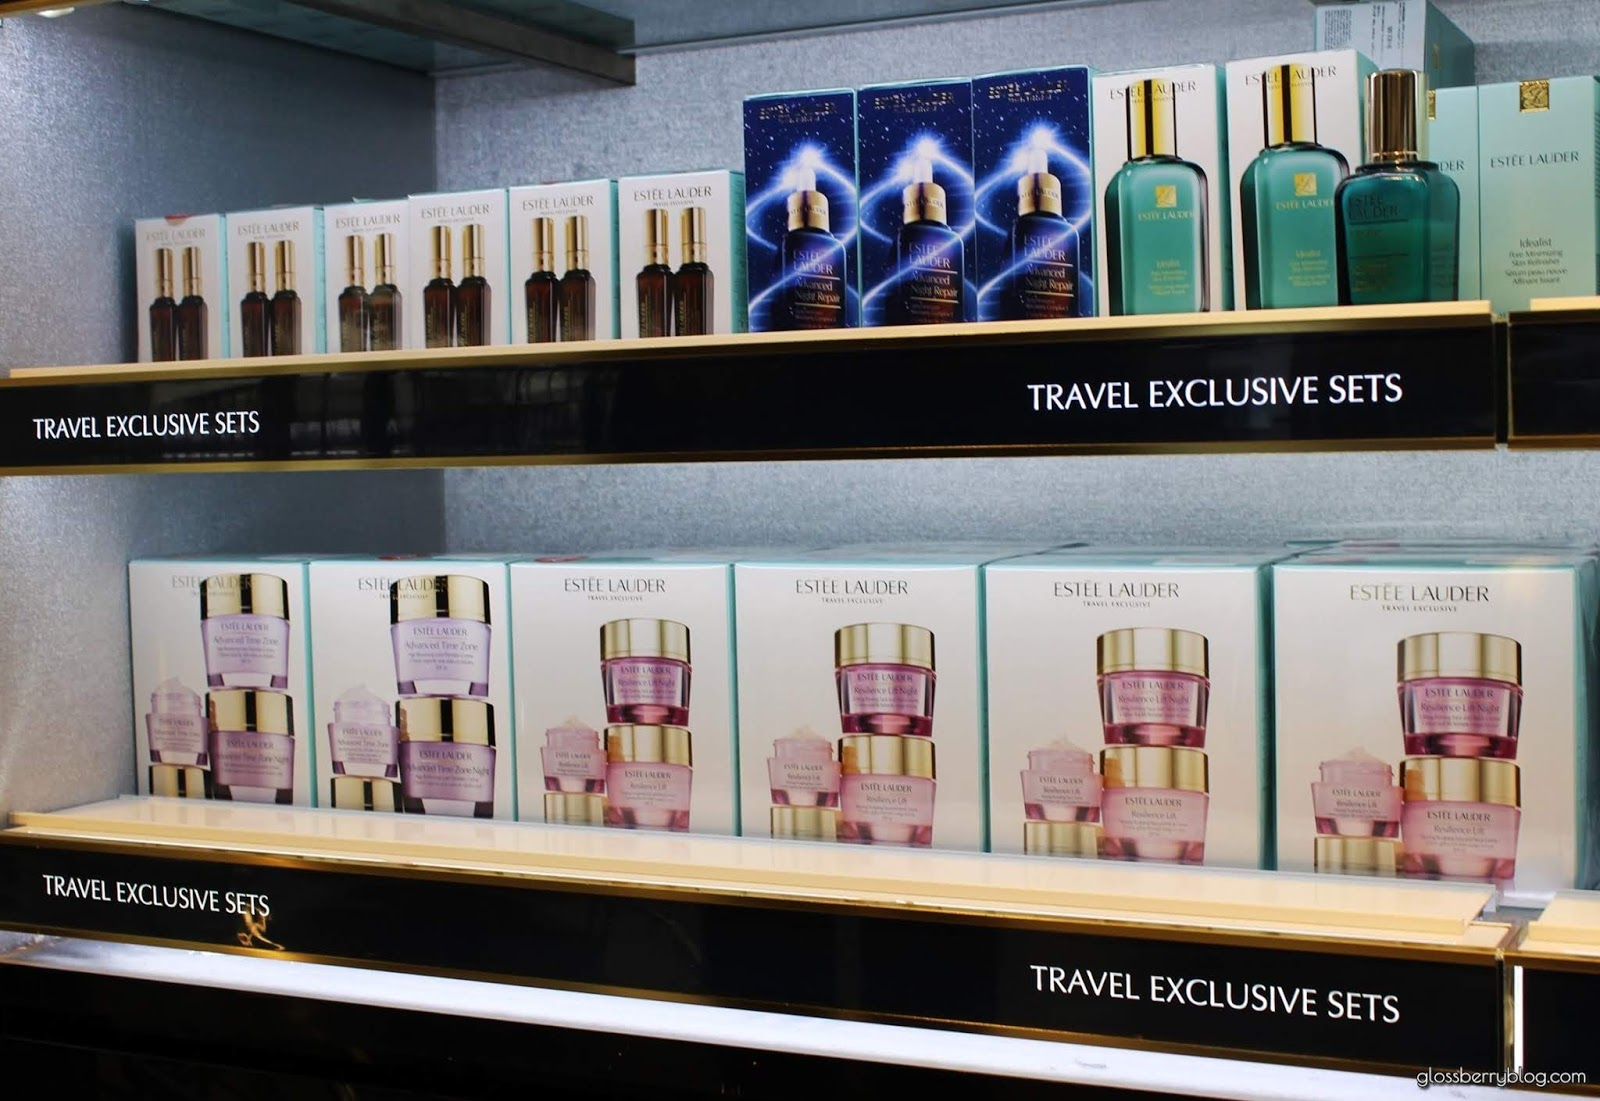 Estee Lauder Travel Exculsive Sets